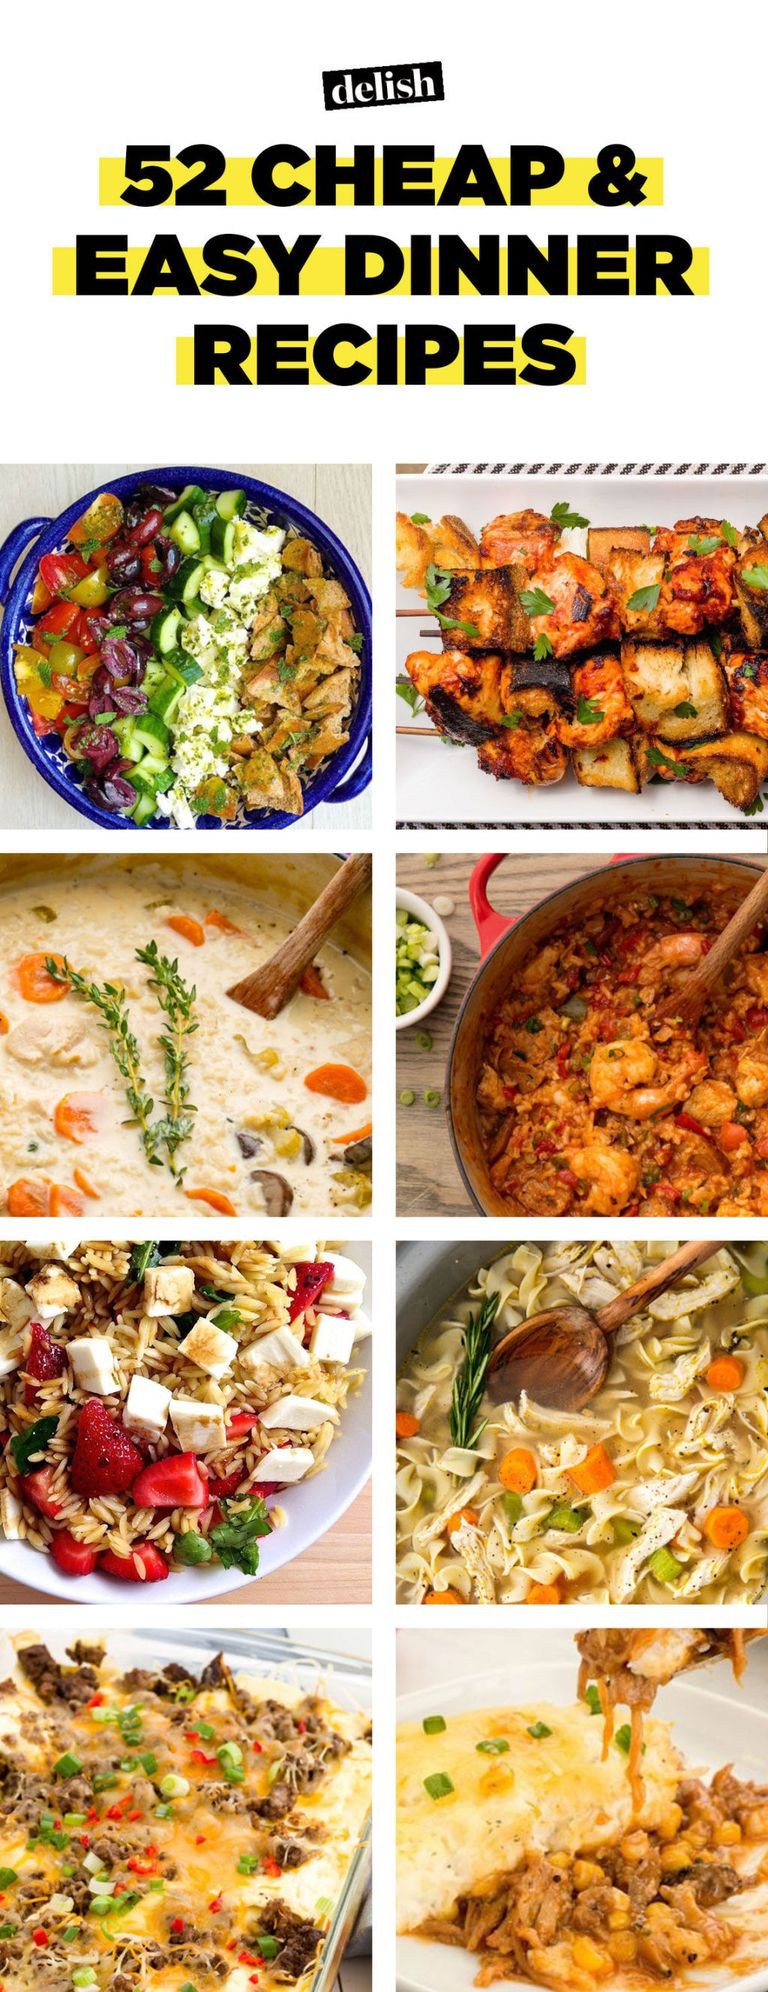 Easy Cheap Dinners  52 Easy Cheap Recipes – Inexpensive Food Ideas—Delish